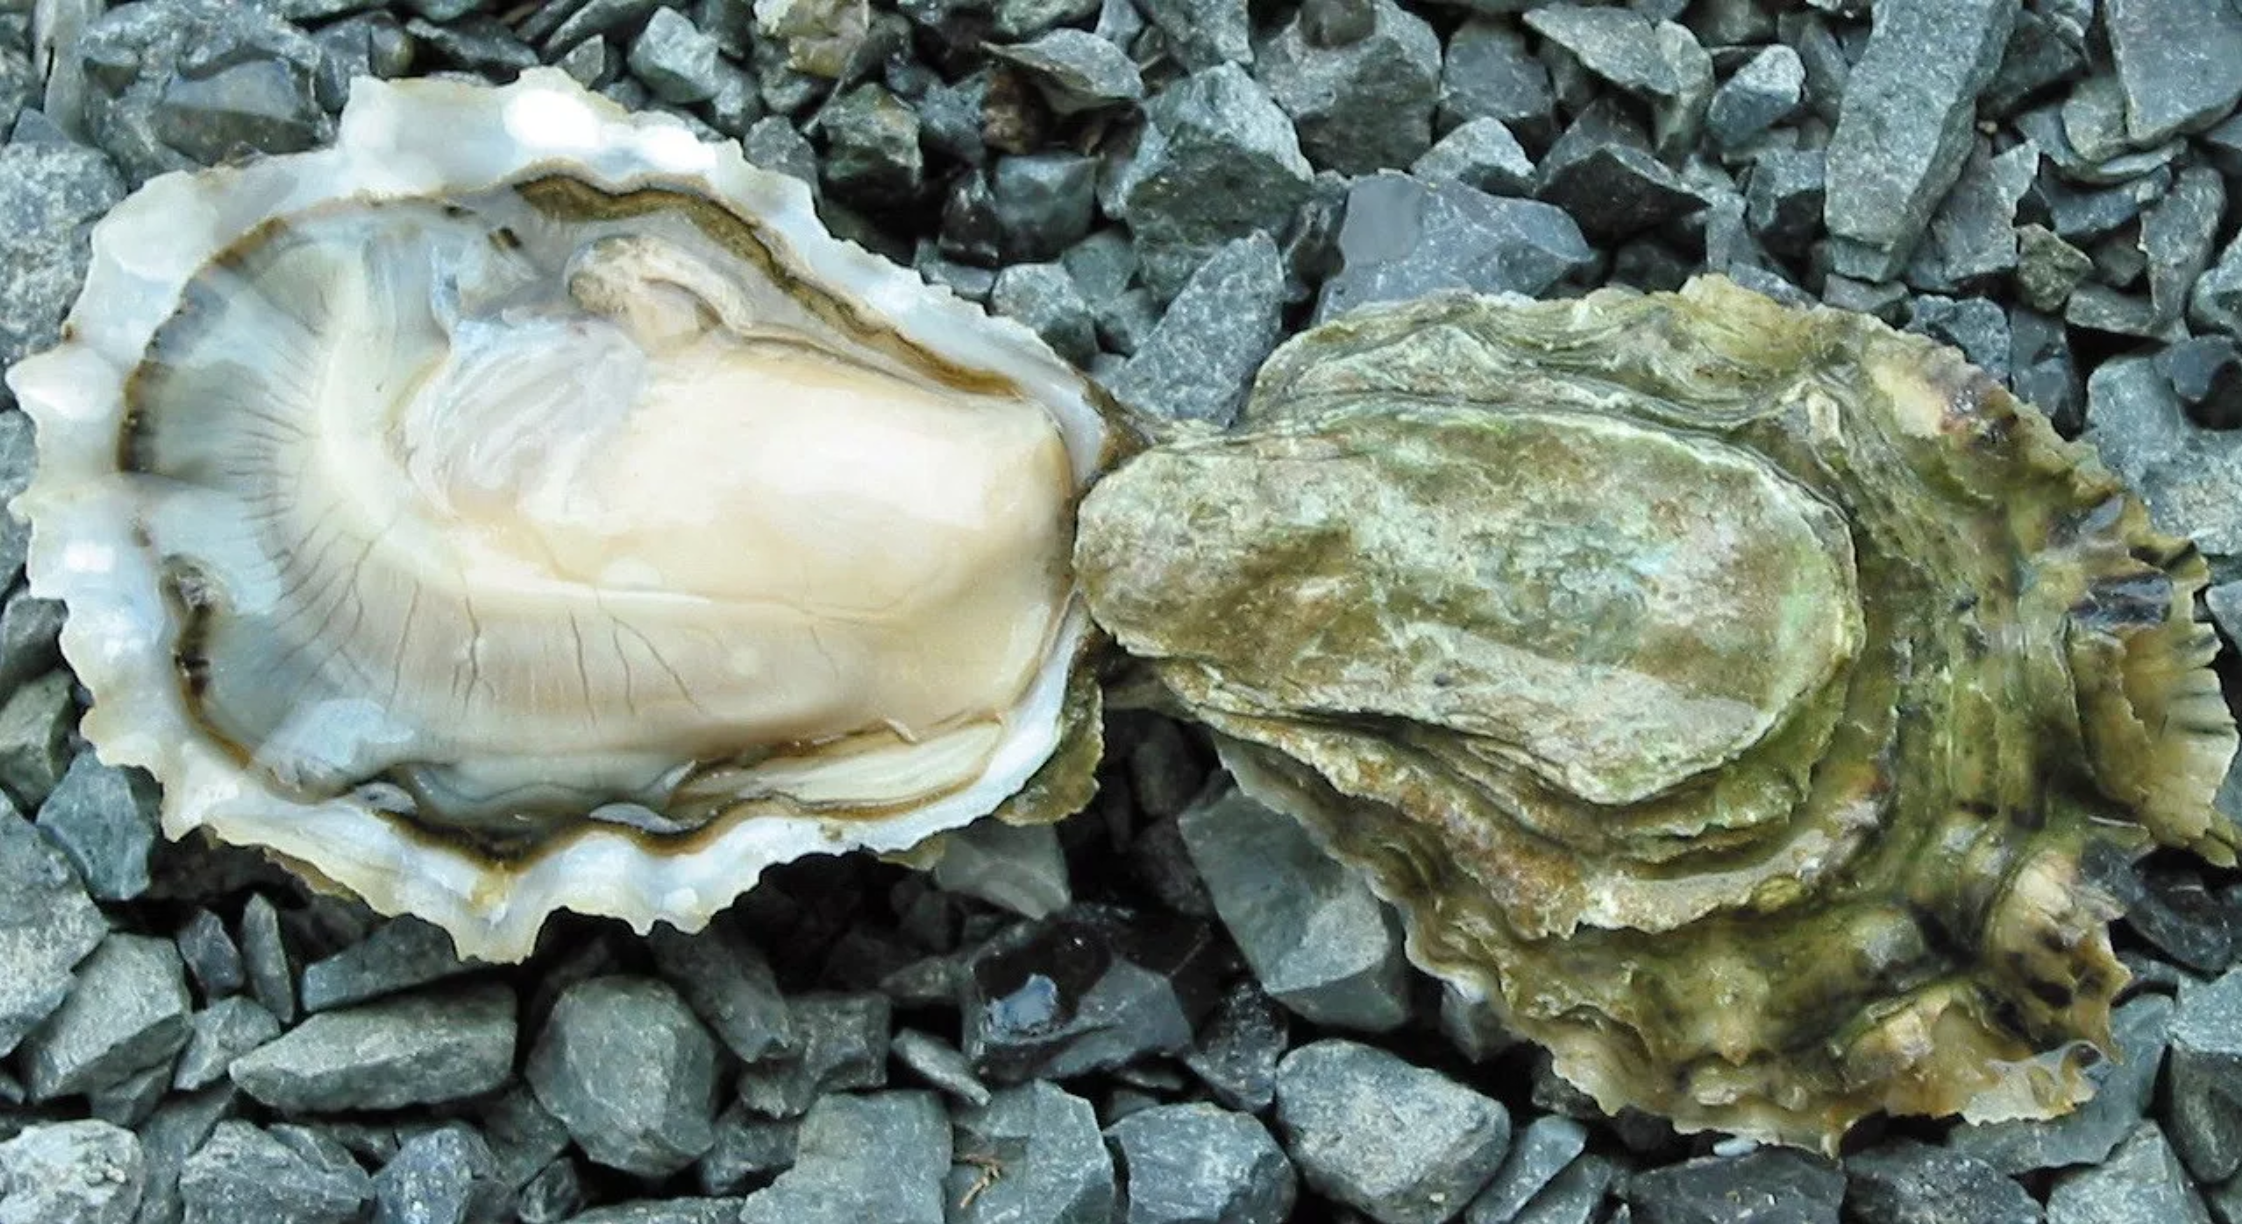 Oysters - My favorite! Oysters are loaded with zinc (elevates Testosterone and HGH/human growth hormone) to help enhance your physical performance in the bedroom.